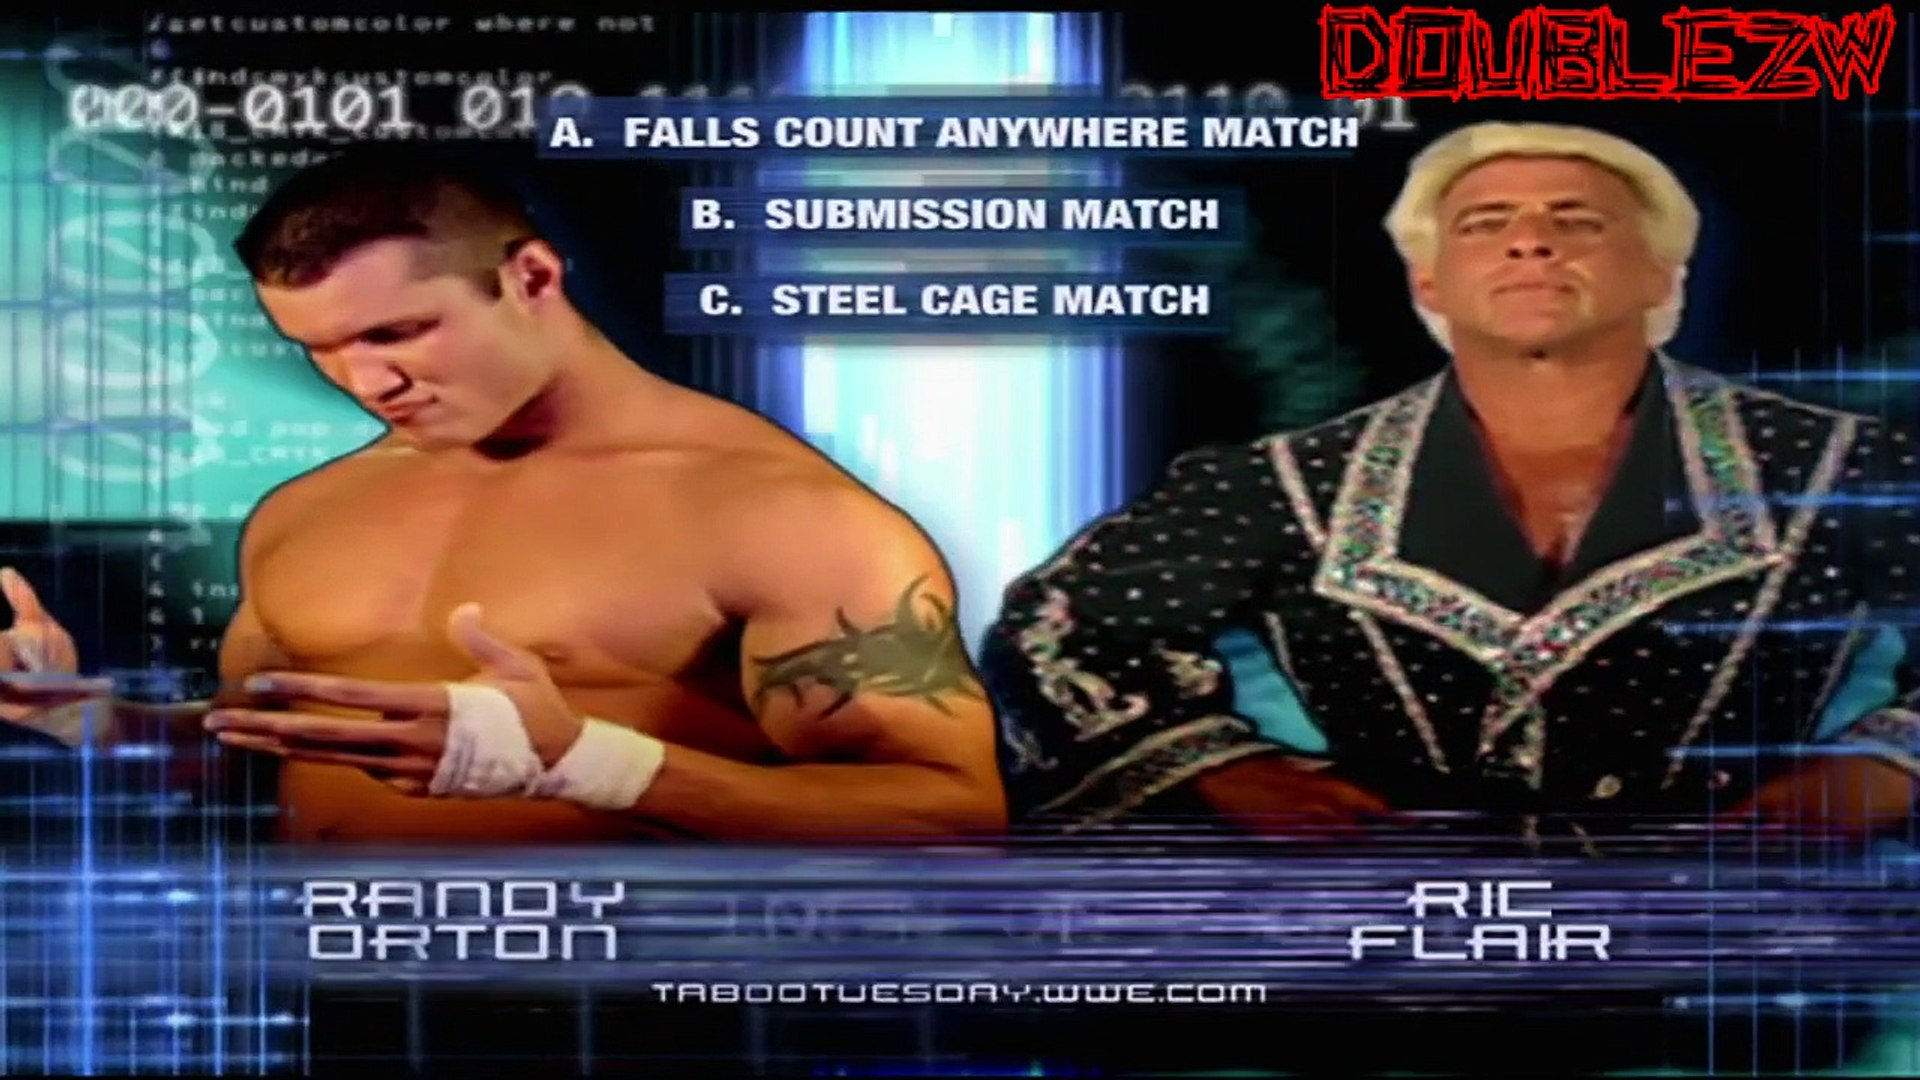 Ric Flair Taboo Tuesday 2004 Promo - Barechested , HD Wallpaper & Backgrounds